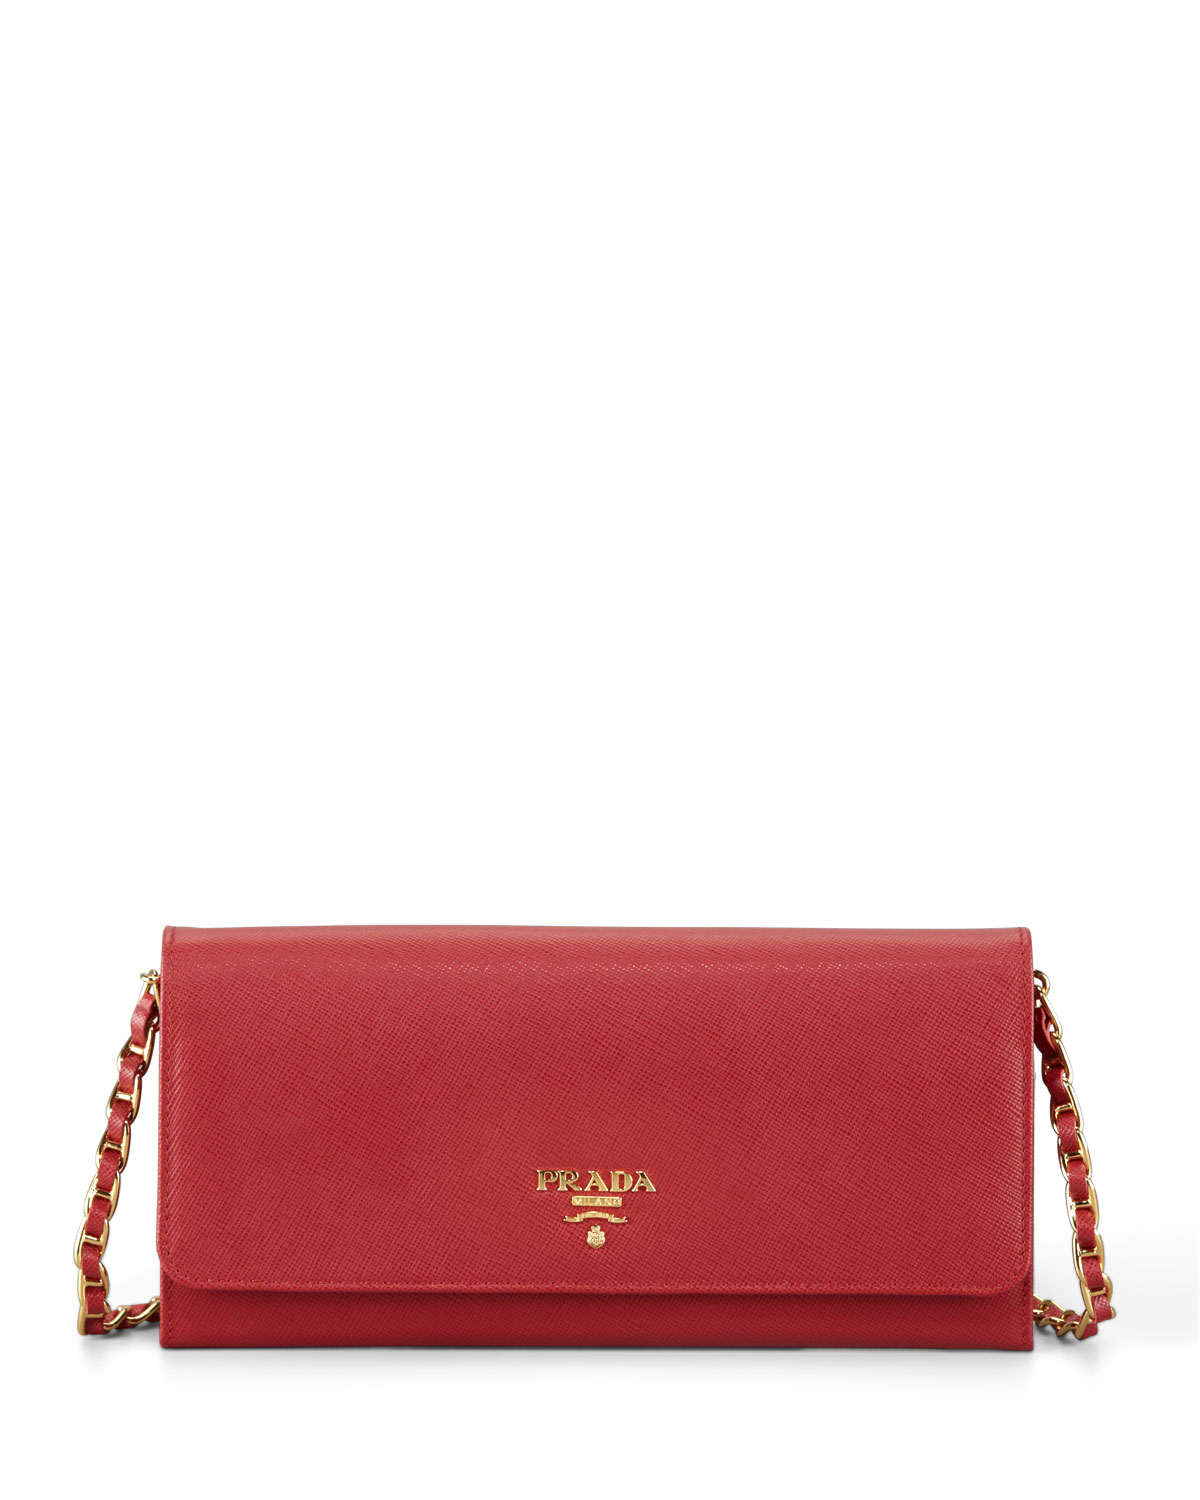 Prada Saffiano Leather Wallet-on-chain in Red | Lyst